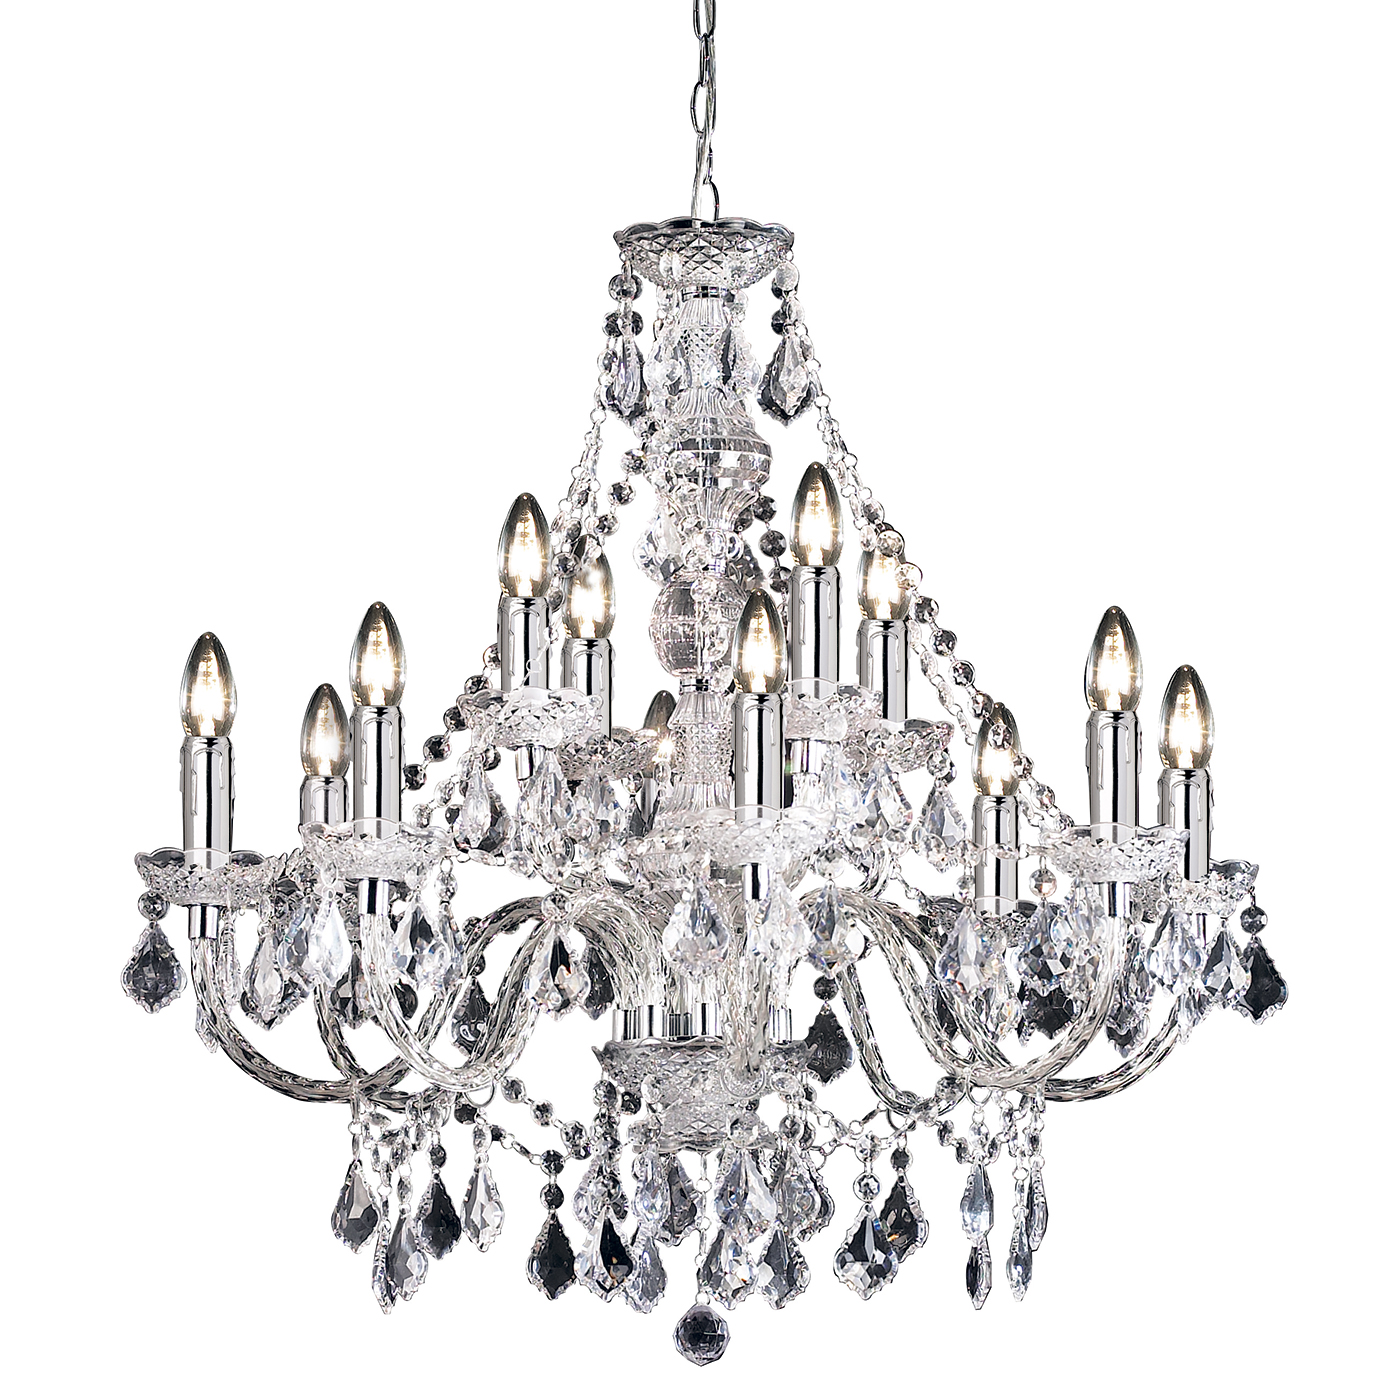 Endon Clarence chandelier 12x 60W Clear acrylic & chrome effect plate Thumbnail 1